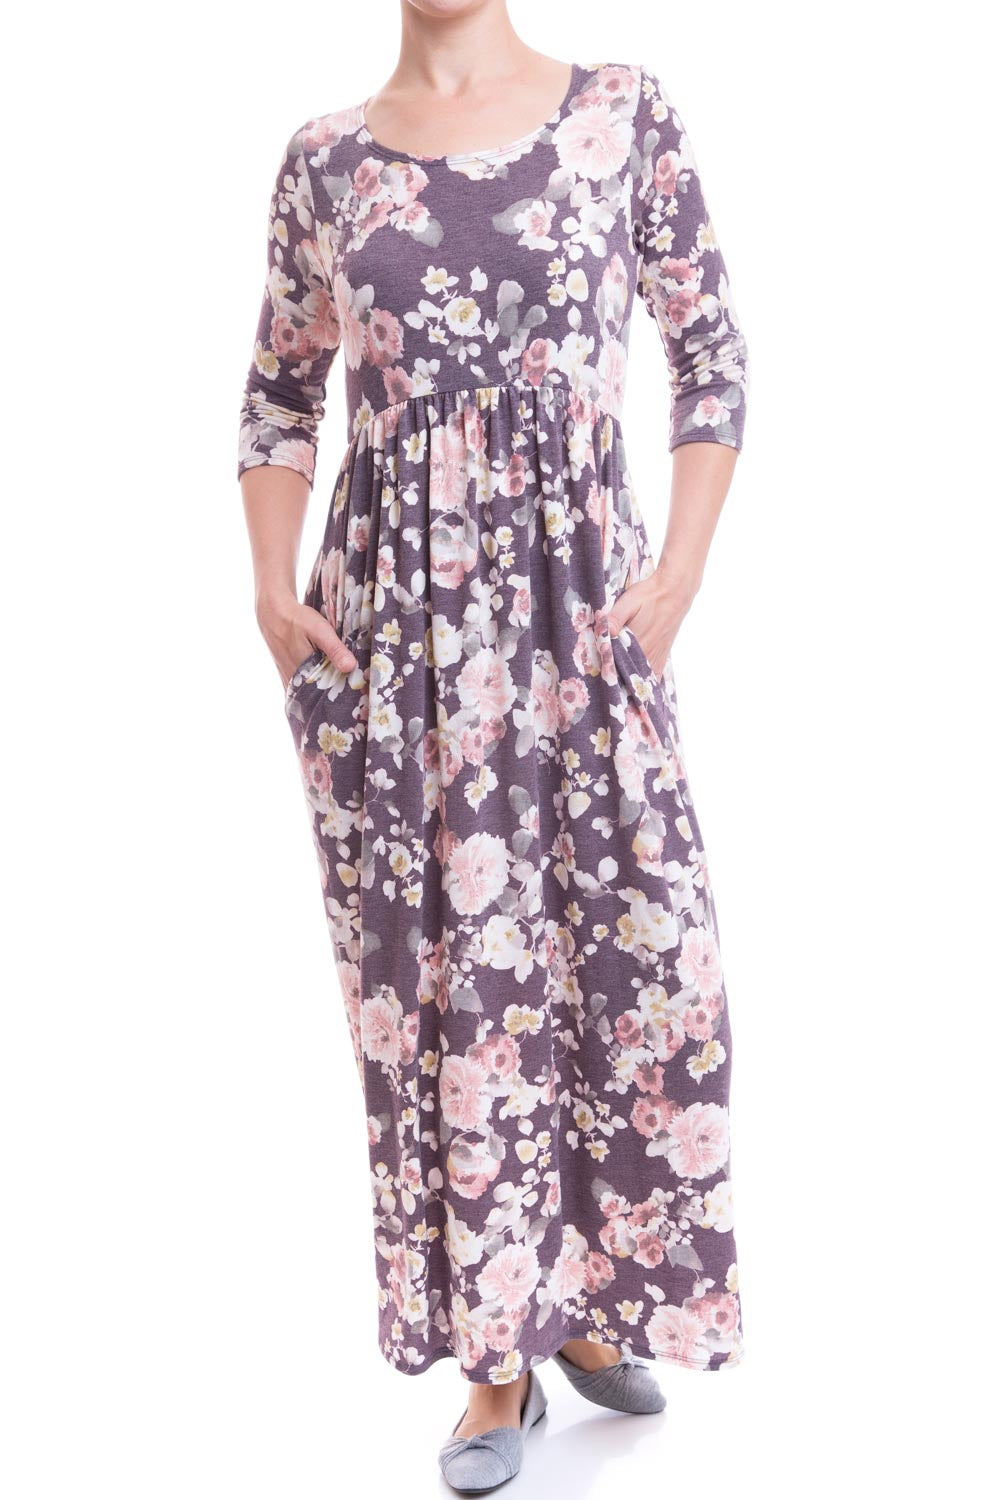 Type 2 Cozy Comfy Dress In Floral Plum